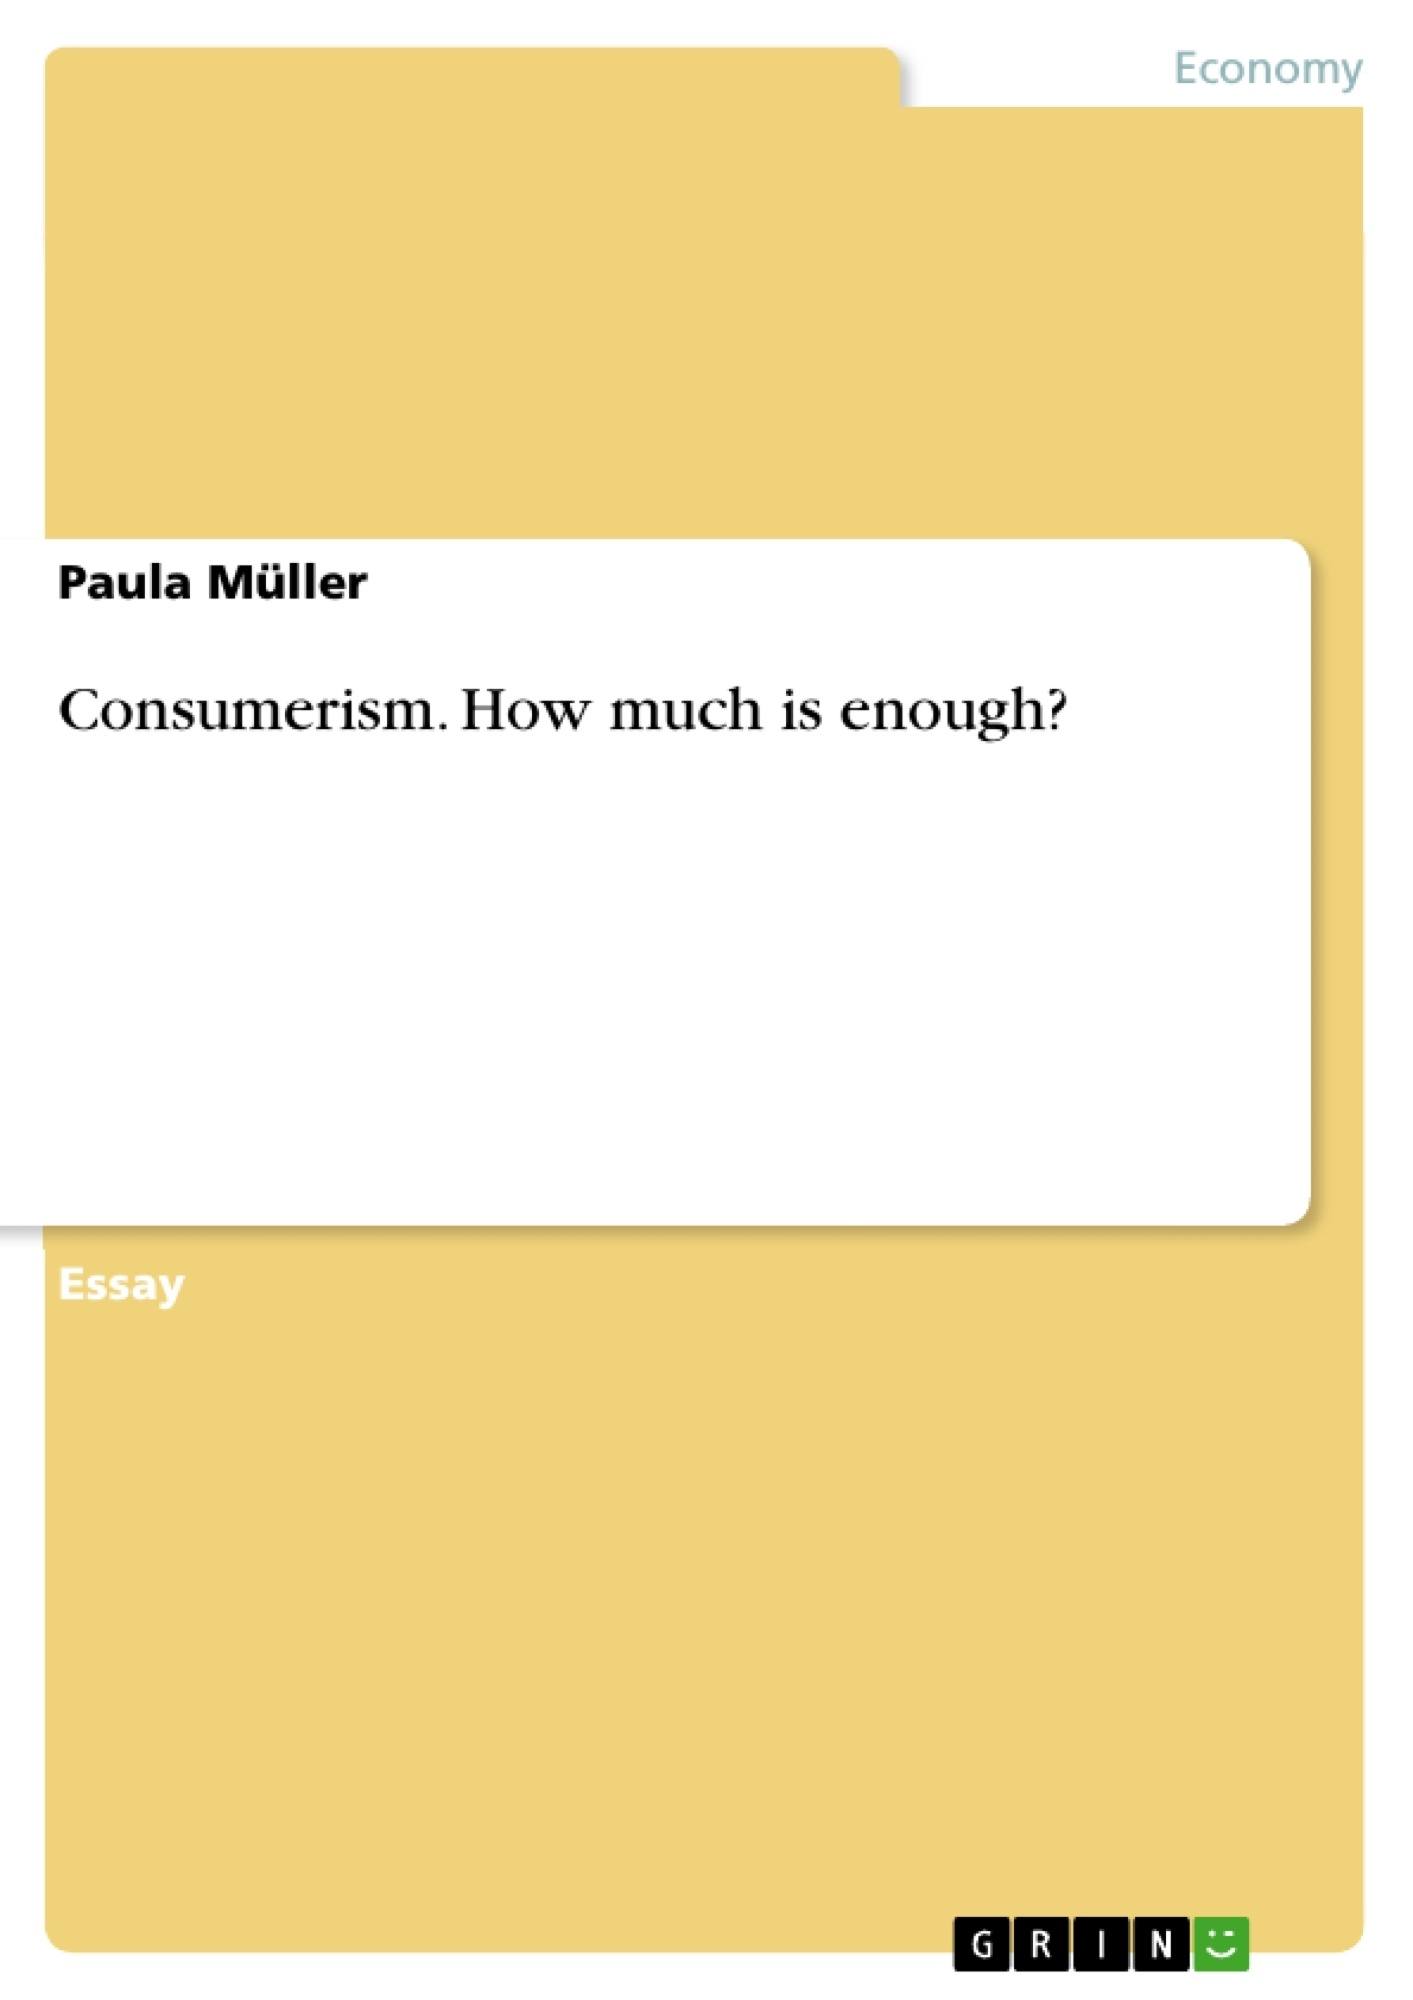 Title: Consumerism. How much is enough?